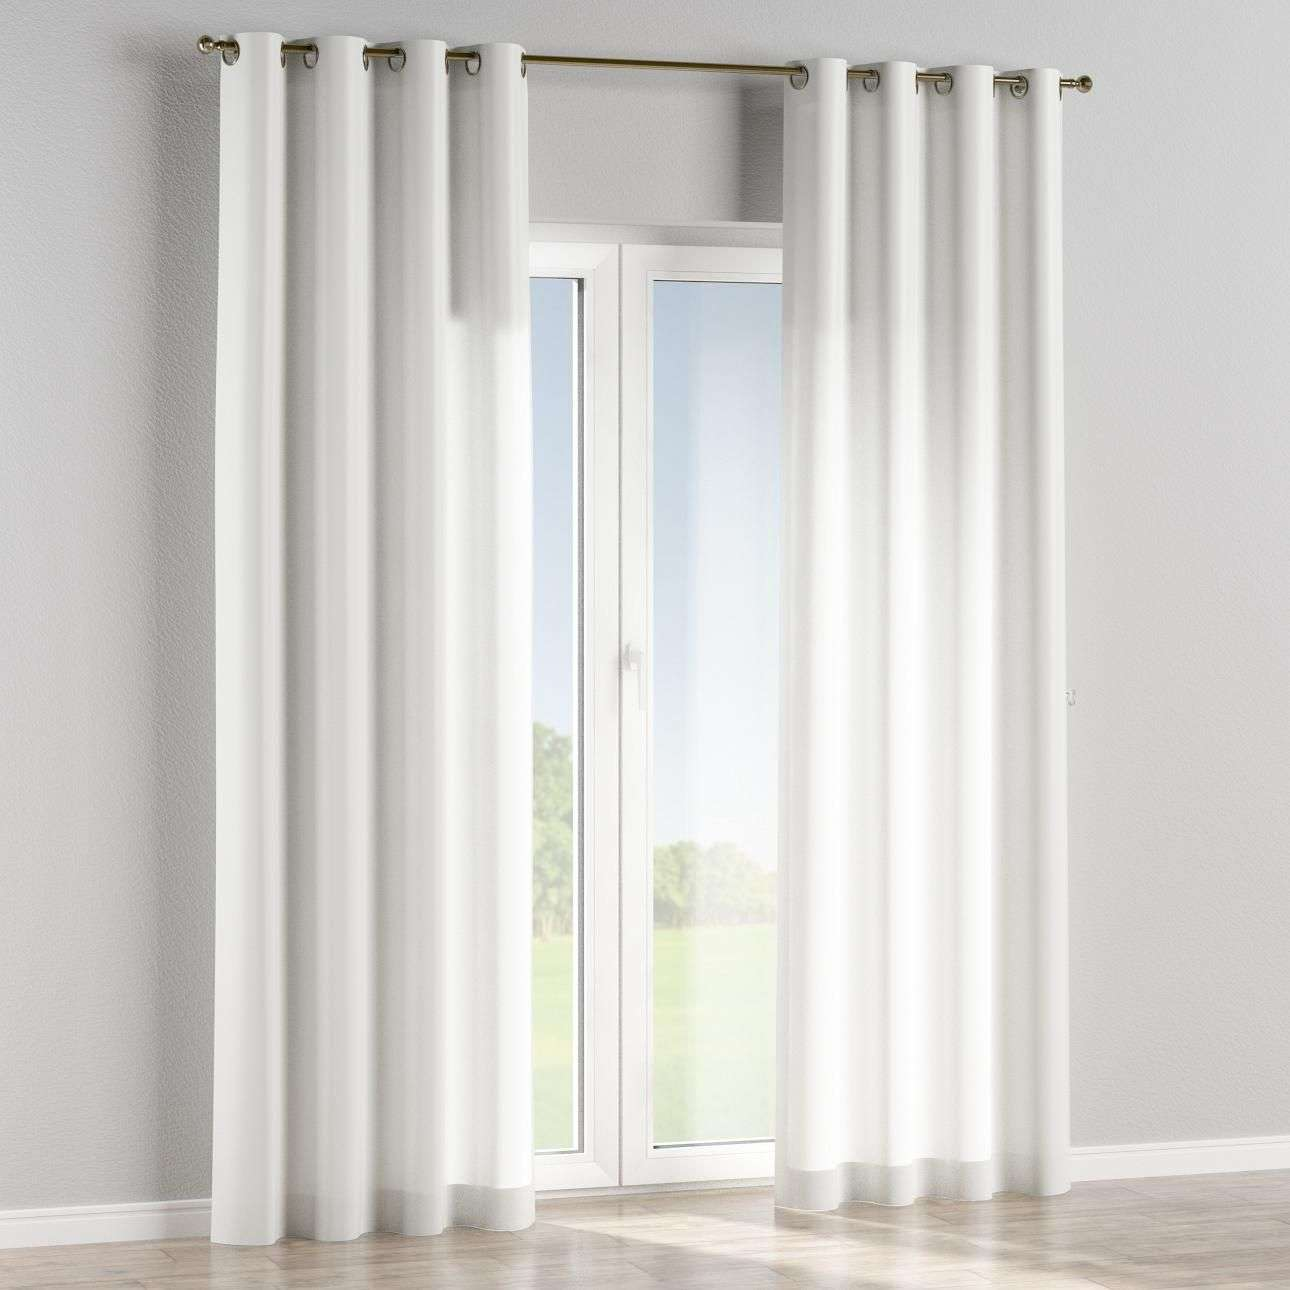 Eyelet curtains in collection Londres, fabric: 122-03